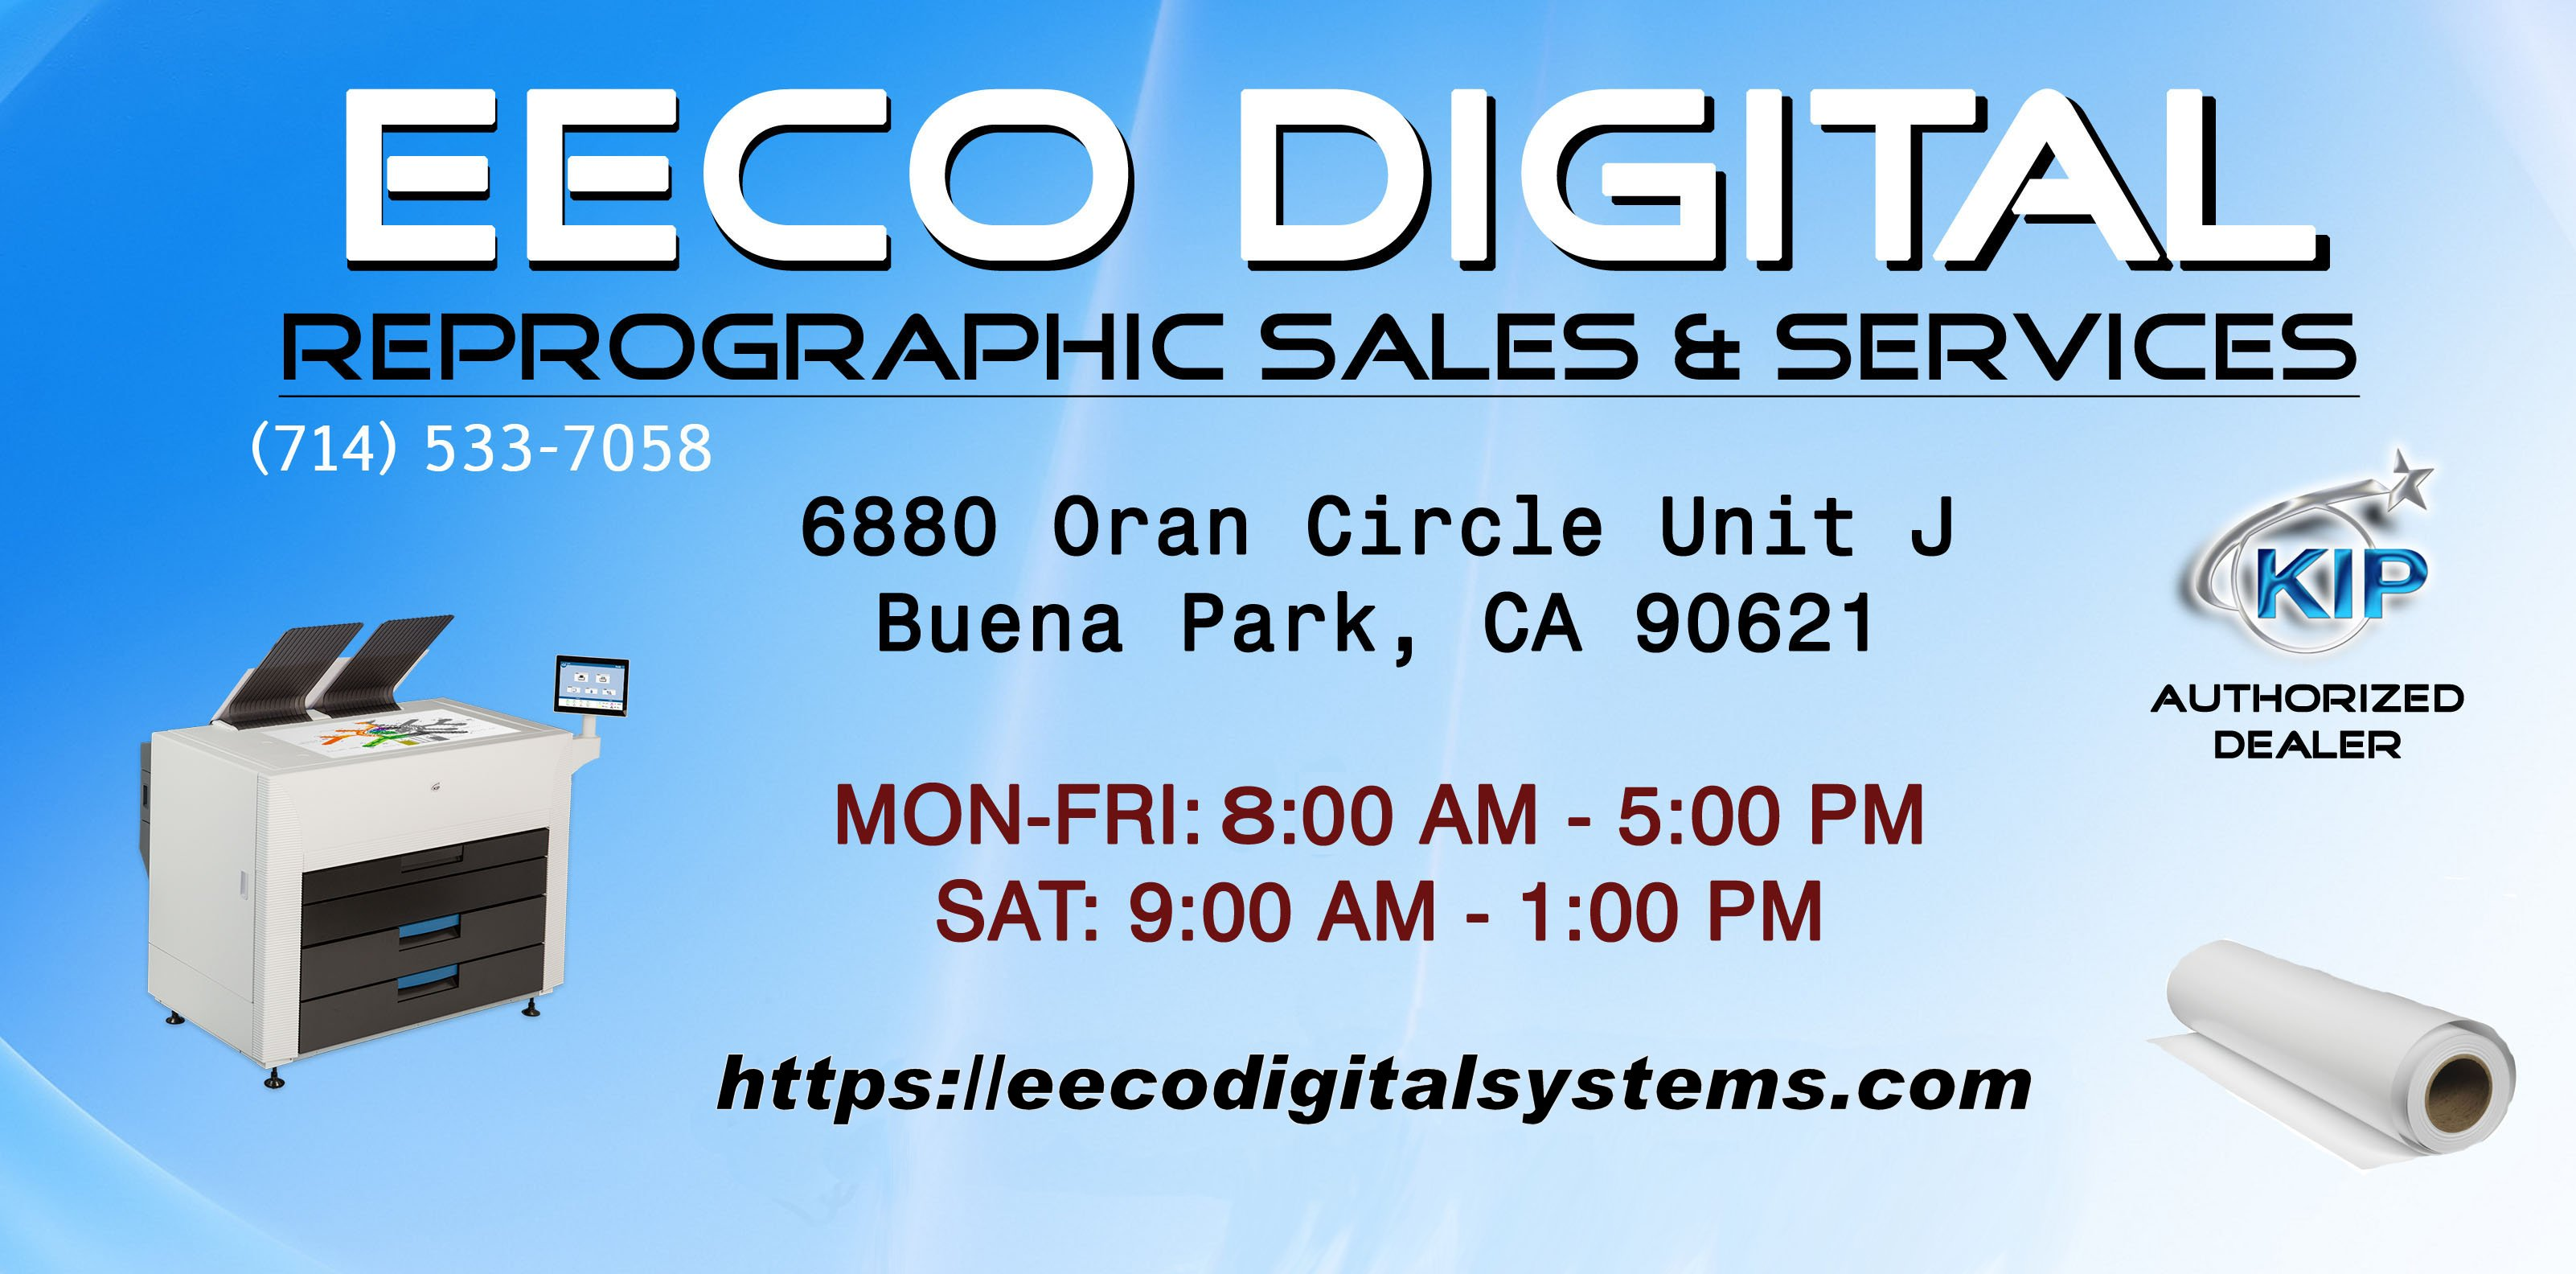 EECO DIGITAL, Printing, Print Shop, Print Shop Near Me, Large Format, Color, Black and white